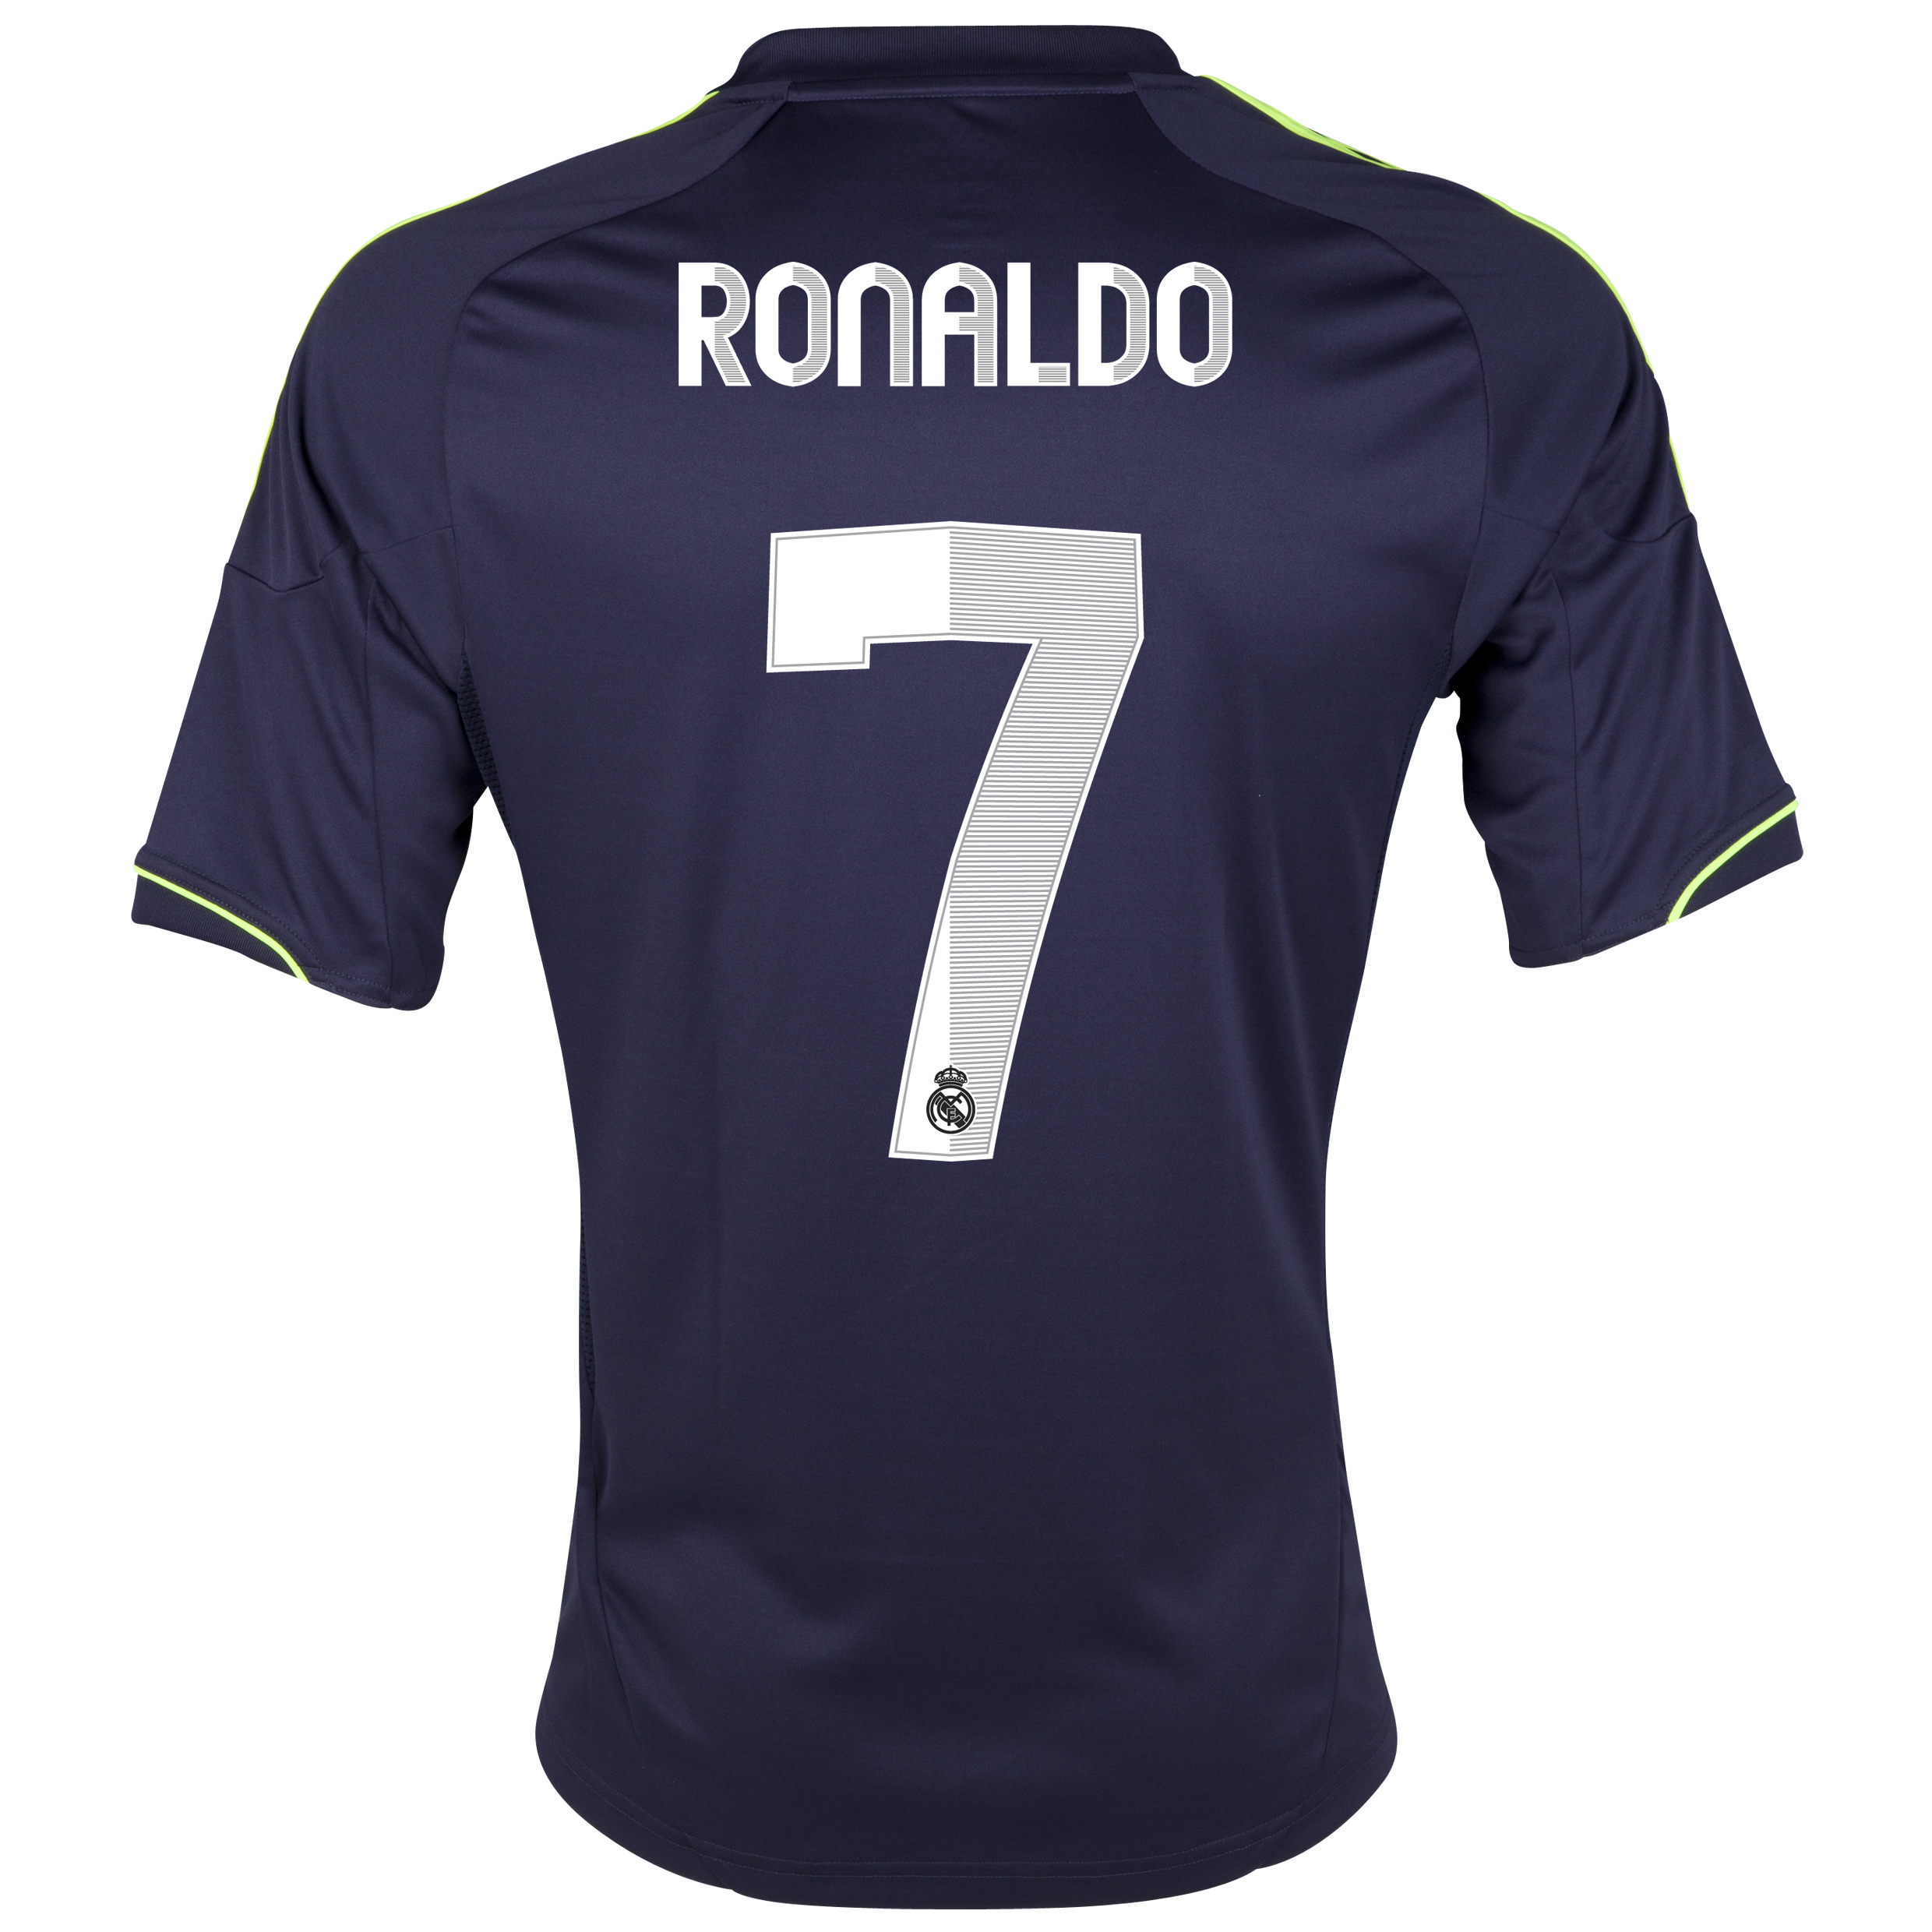 Camiseta visitante Real Madrid 2012/13 con impresin 7 Ronaldo - Nio